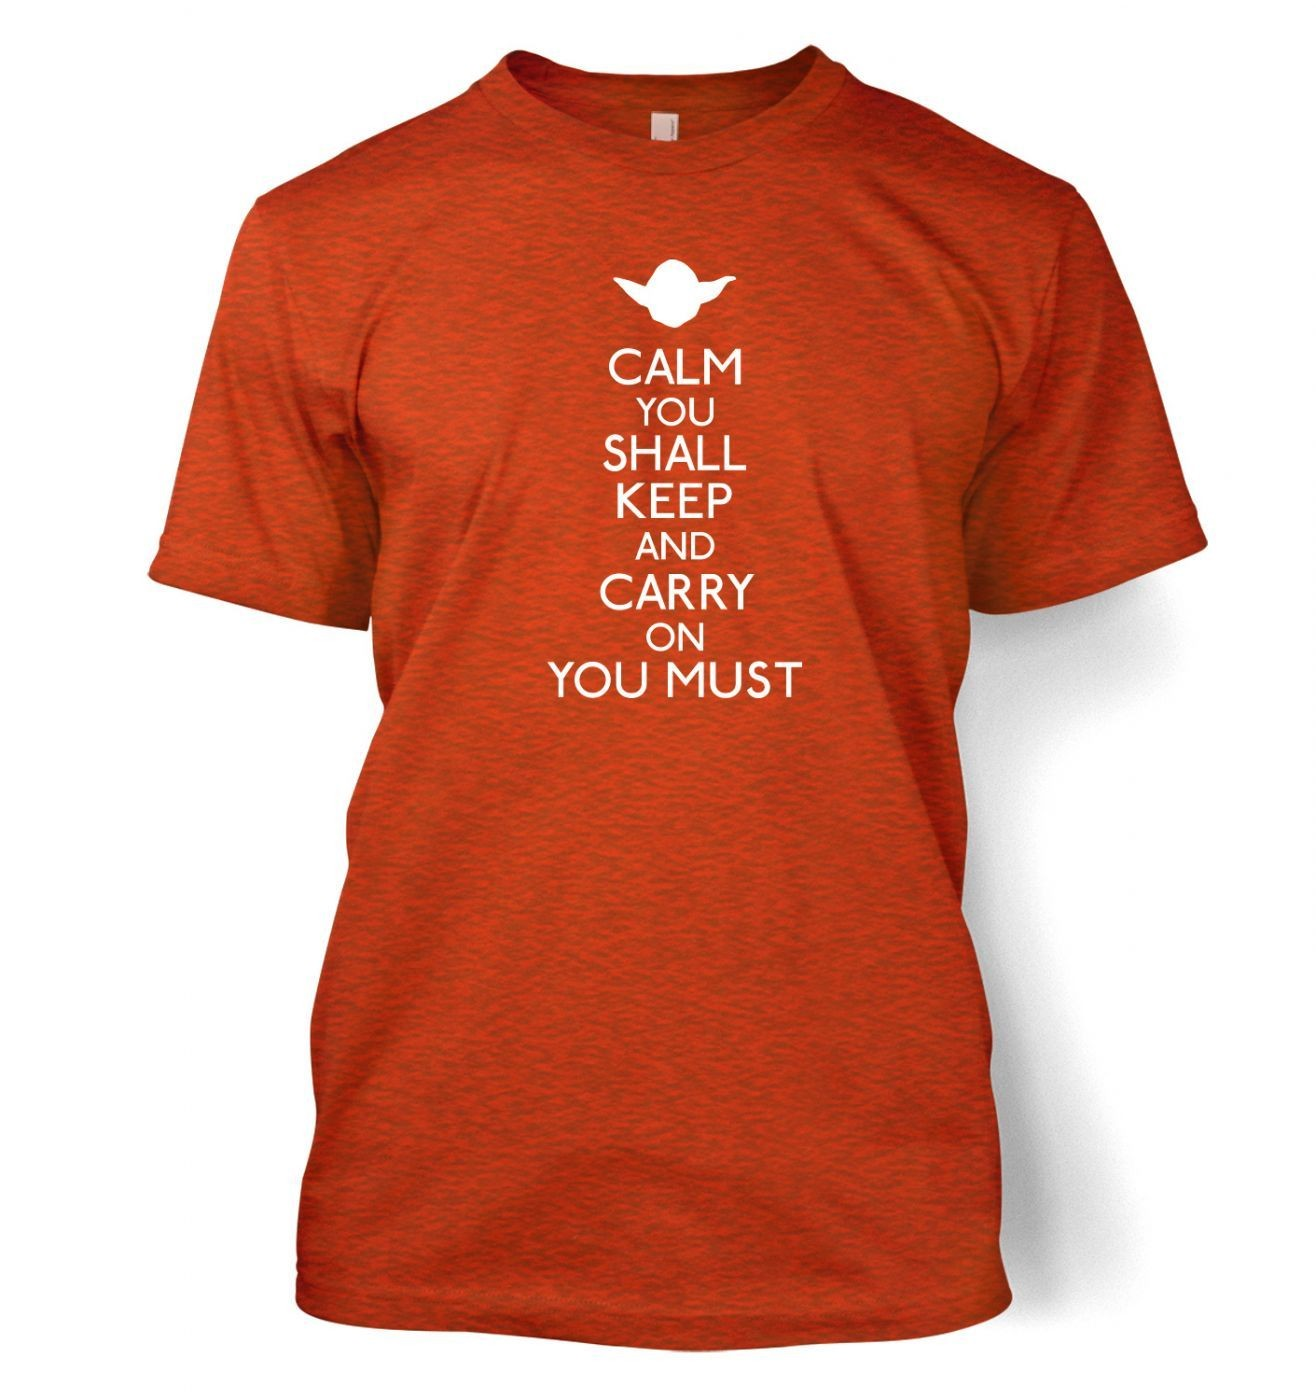 Calm You Shall Keep men's t-shirt